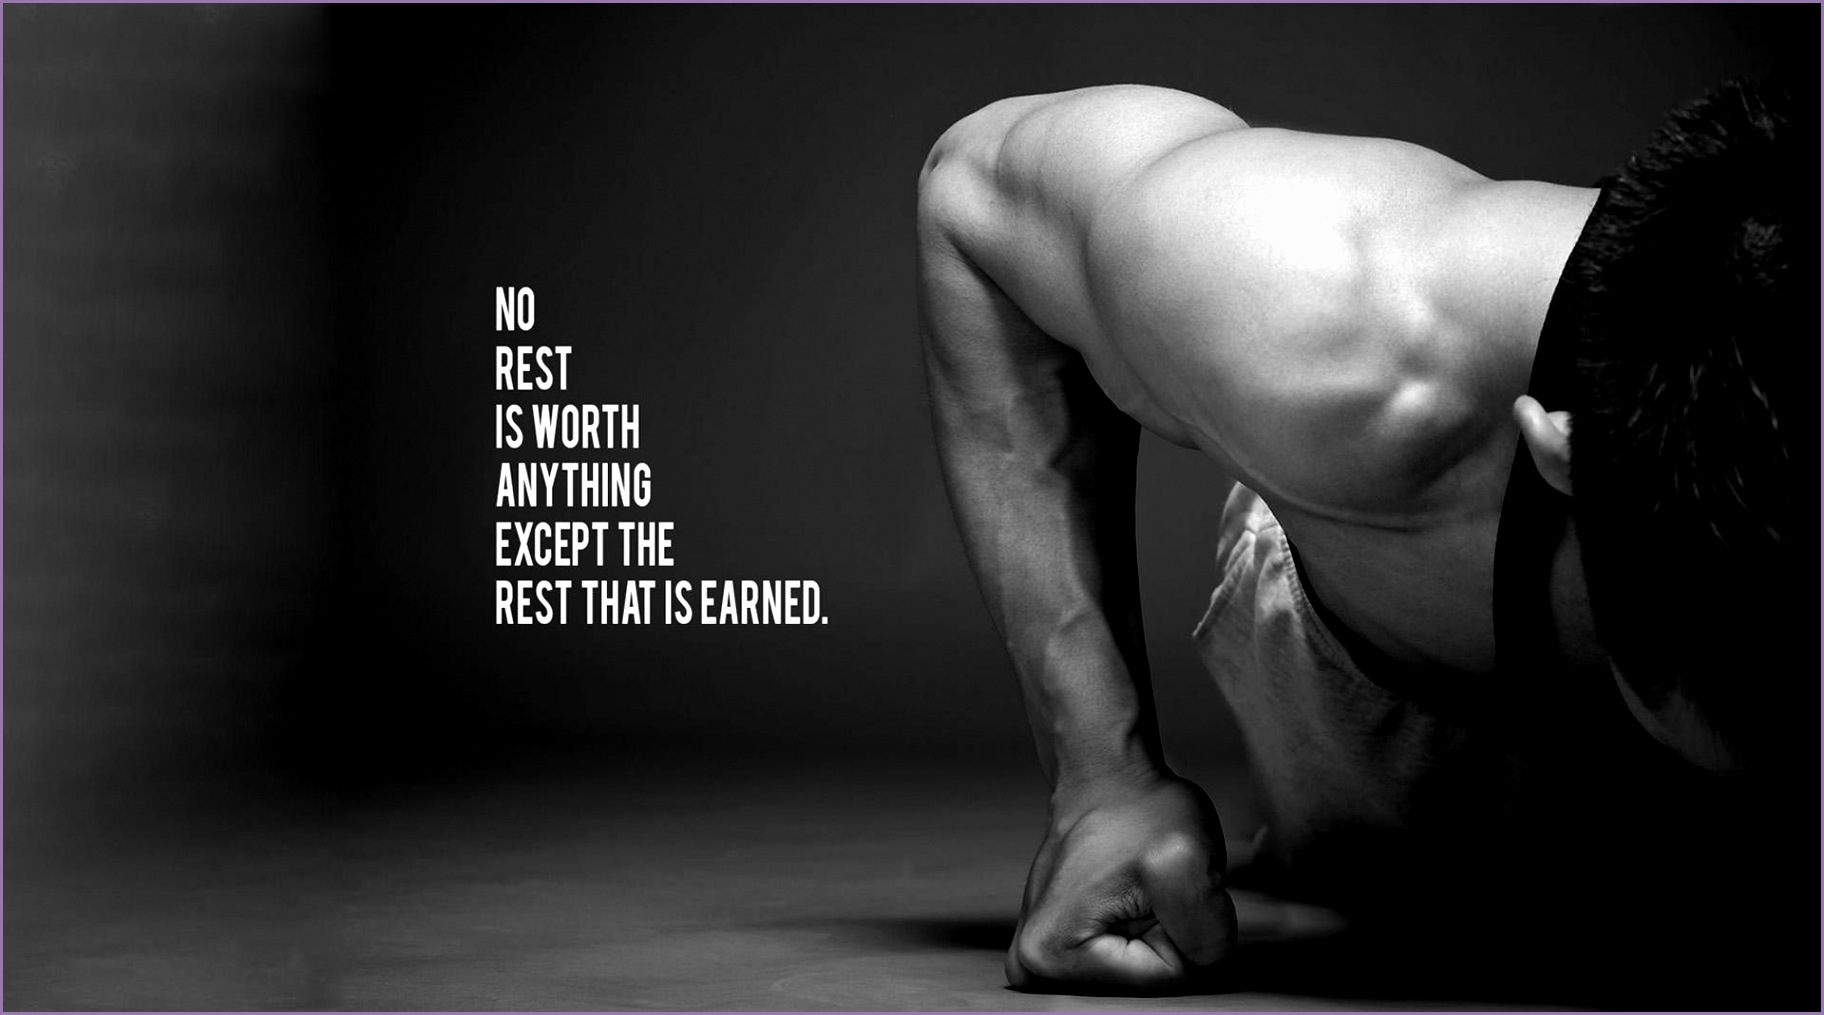 Fitness motivation men wallpaper HD